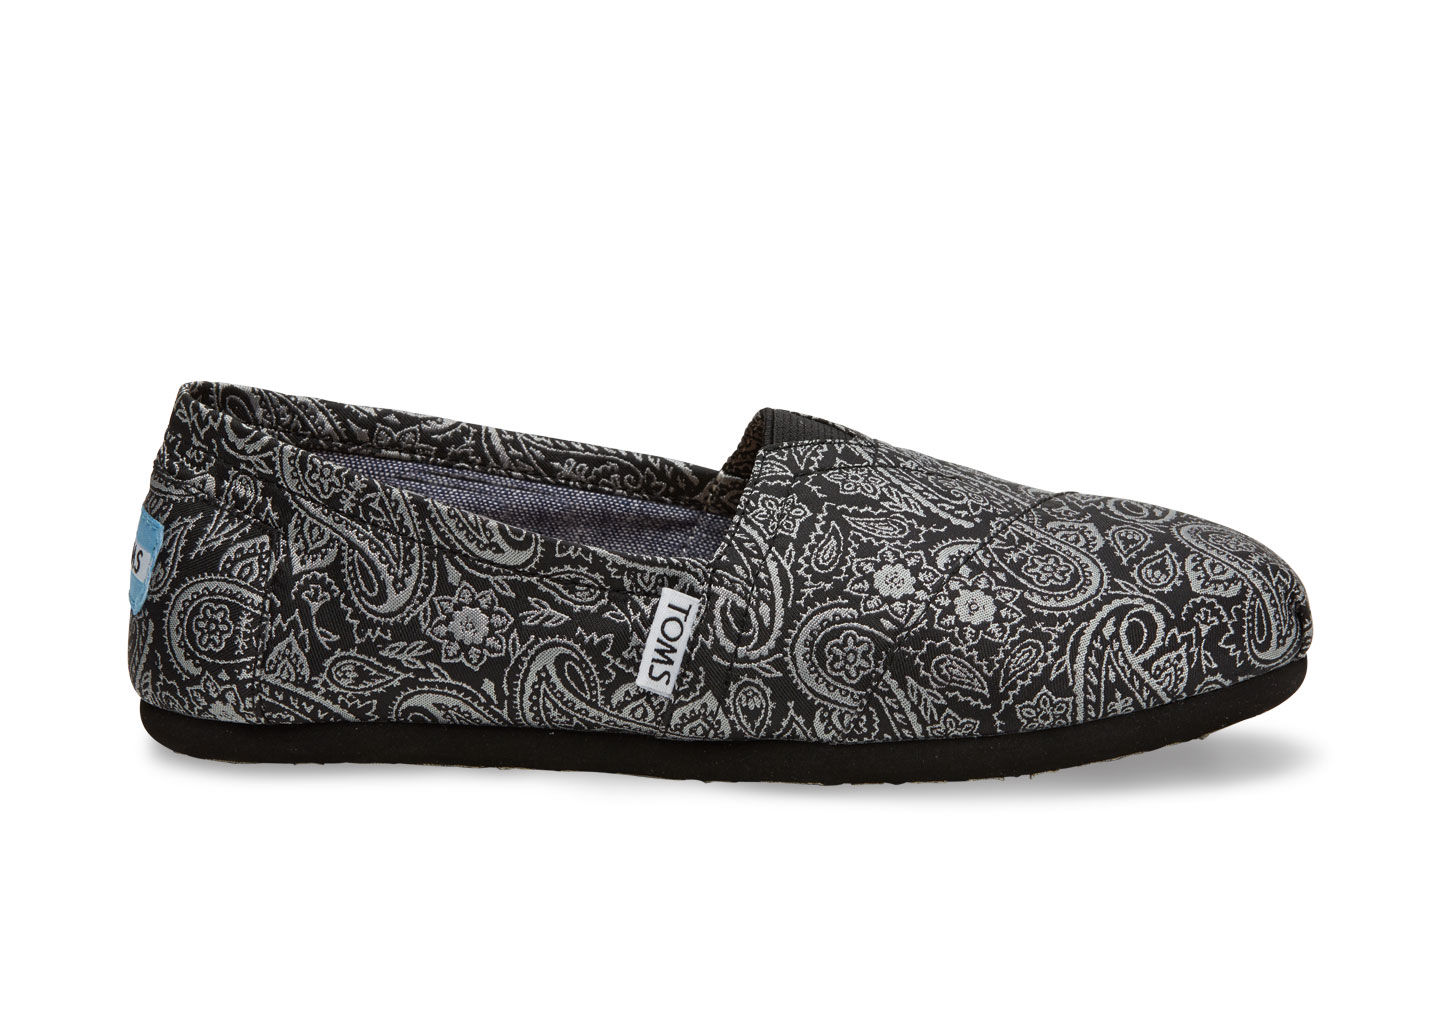 Black and Silver Paisley Women's Classics | TOMS